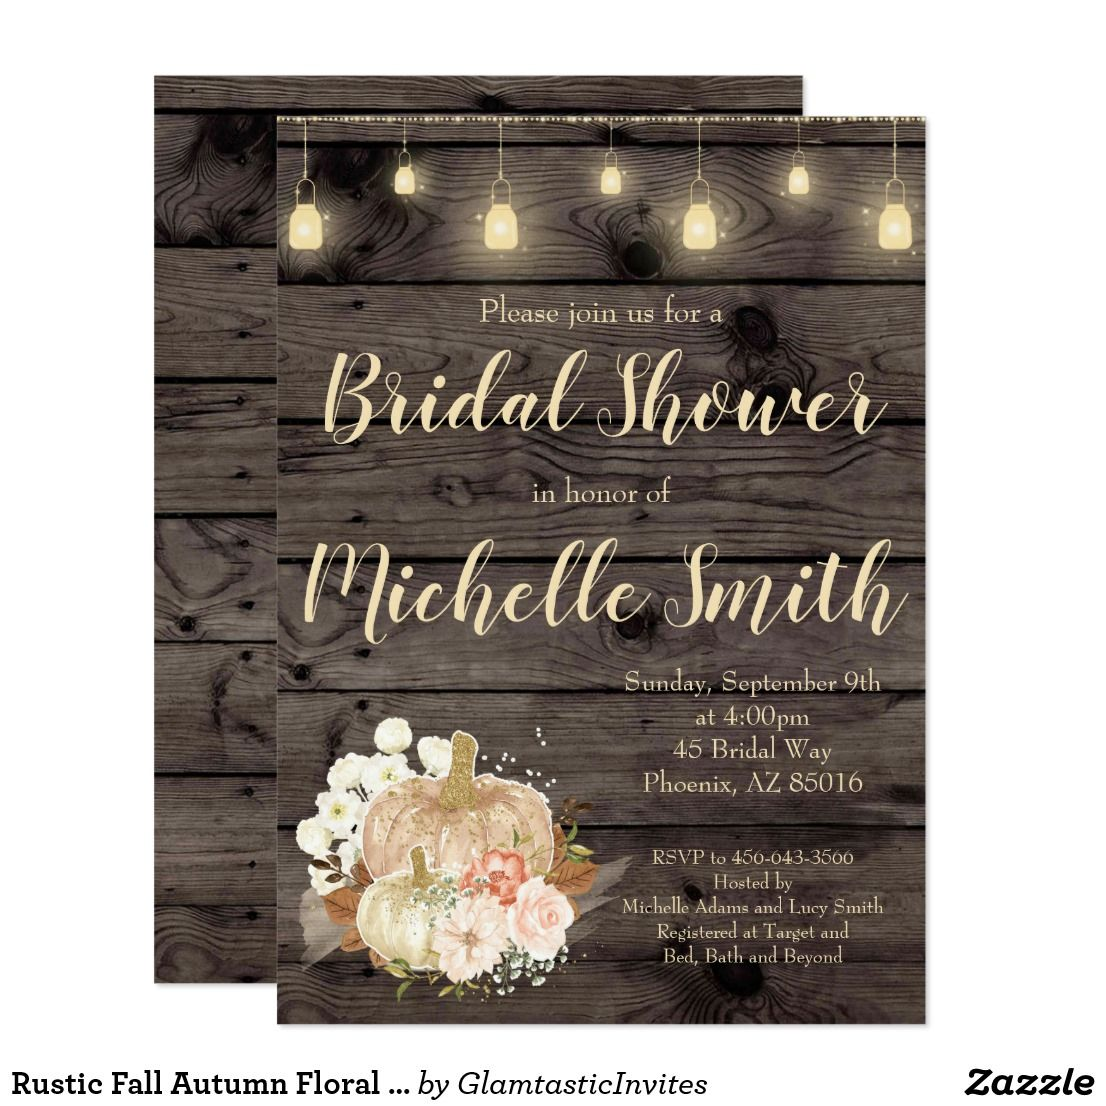 c0c74df7d0ac Rustic Fall Autumn Floral Bridal Shower Invitation Great rustic invitation  for that special day!!! ❤ Affiliate ad link. Wedding invites - customize  your ...